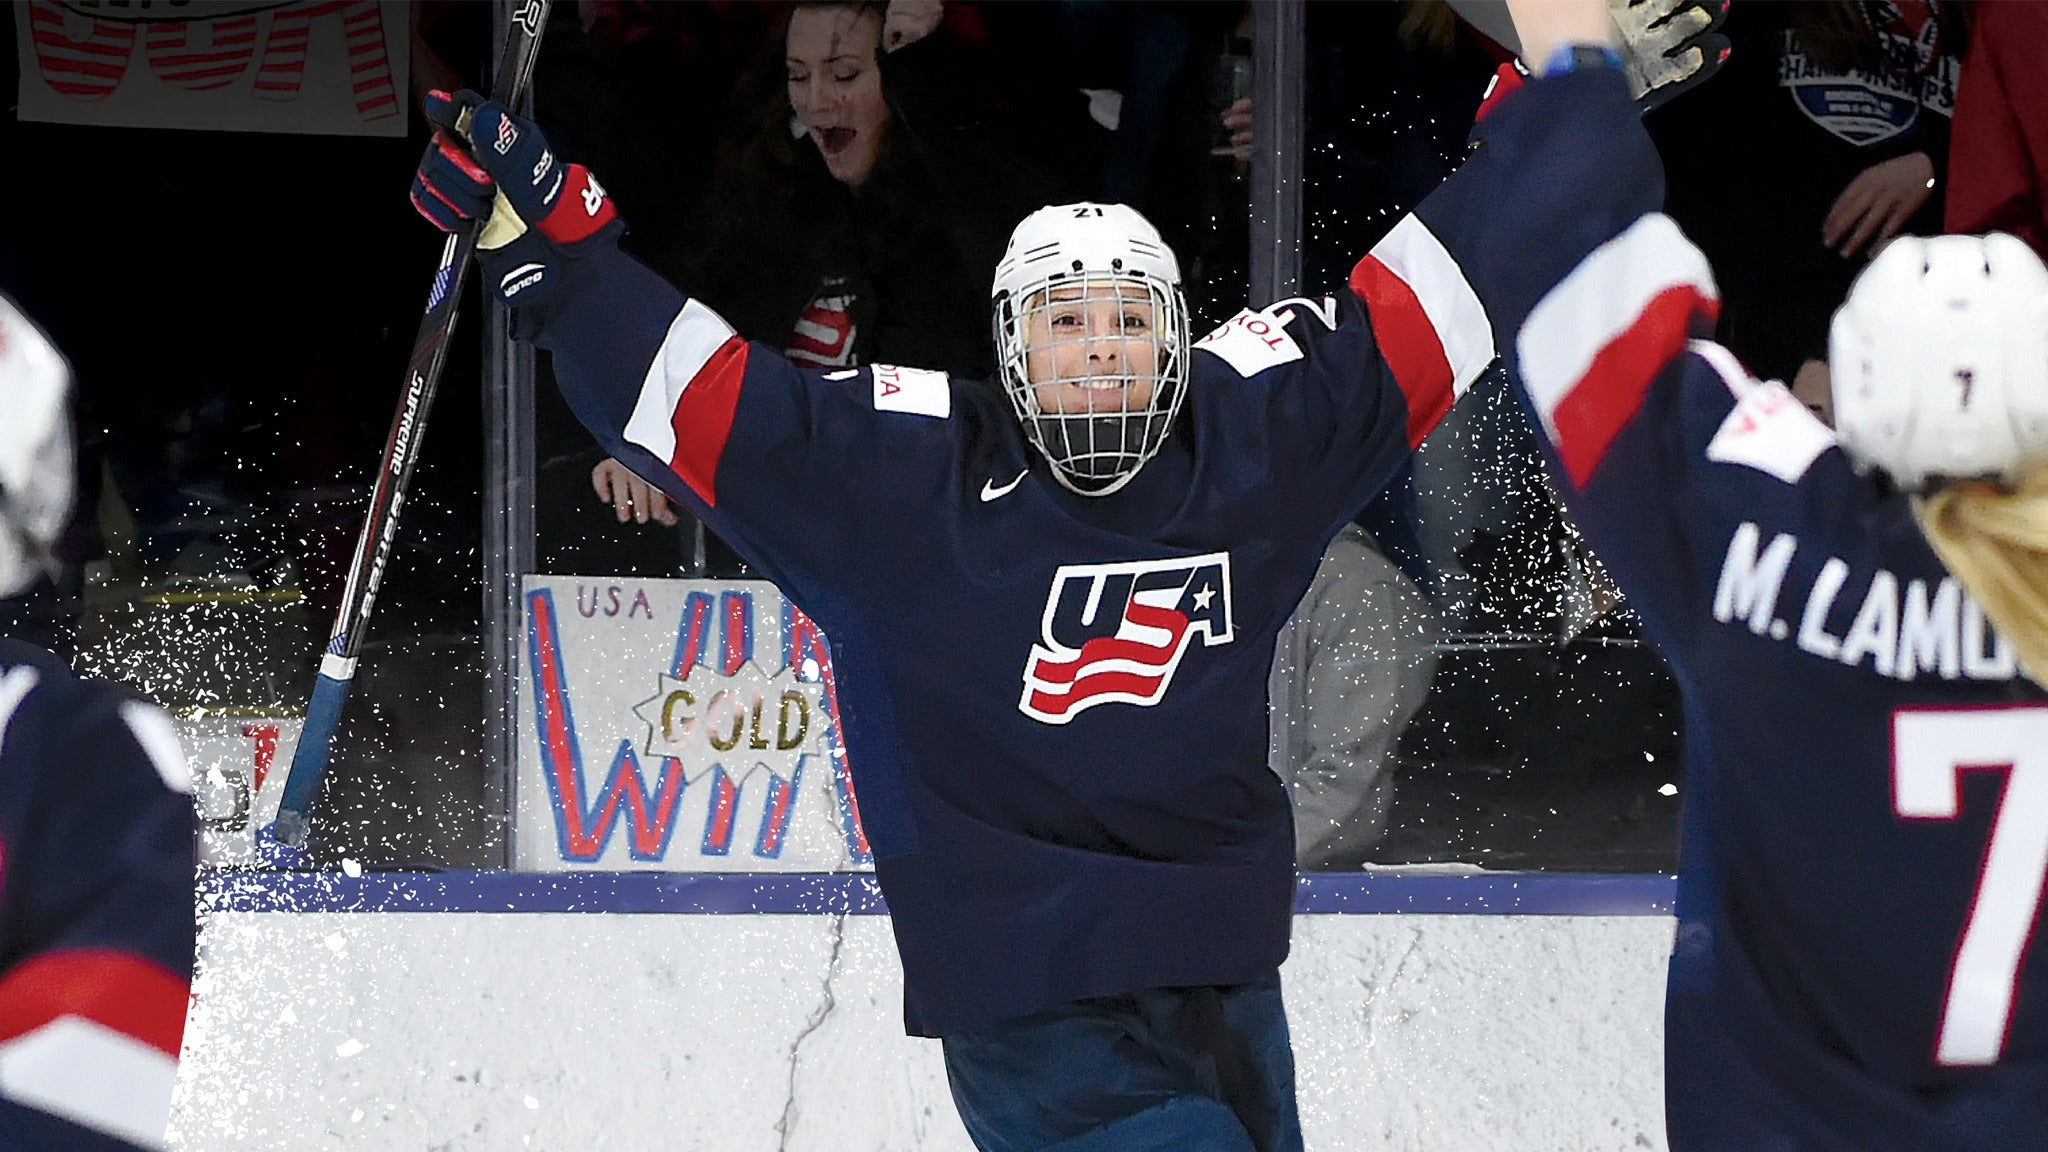 My Why Tour: Usa Vs Canada Featuring U.s. Women's National Hockey Team presale code for show tickets in Saint Paul, MN (Xcel Energy Center)